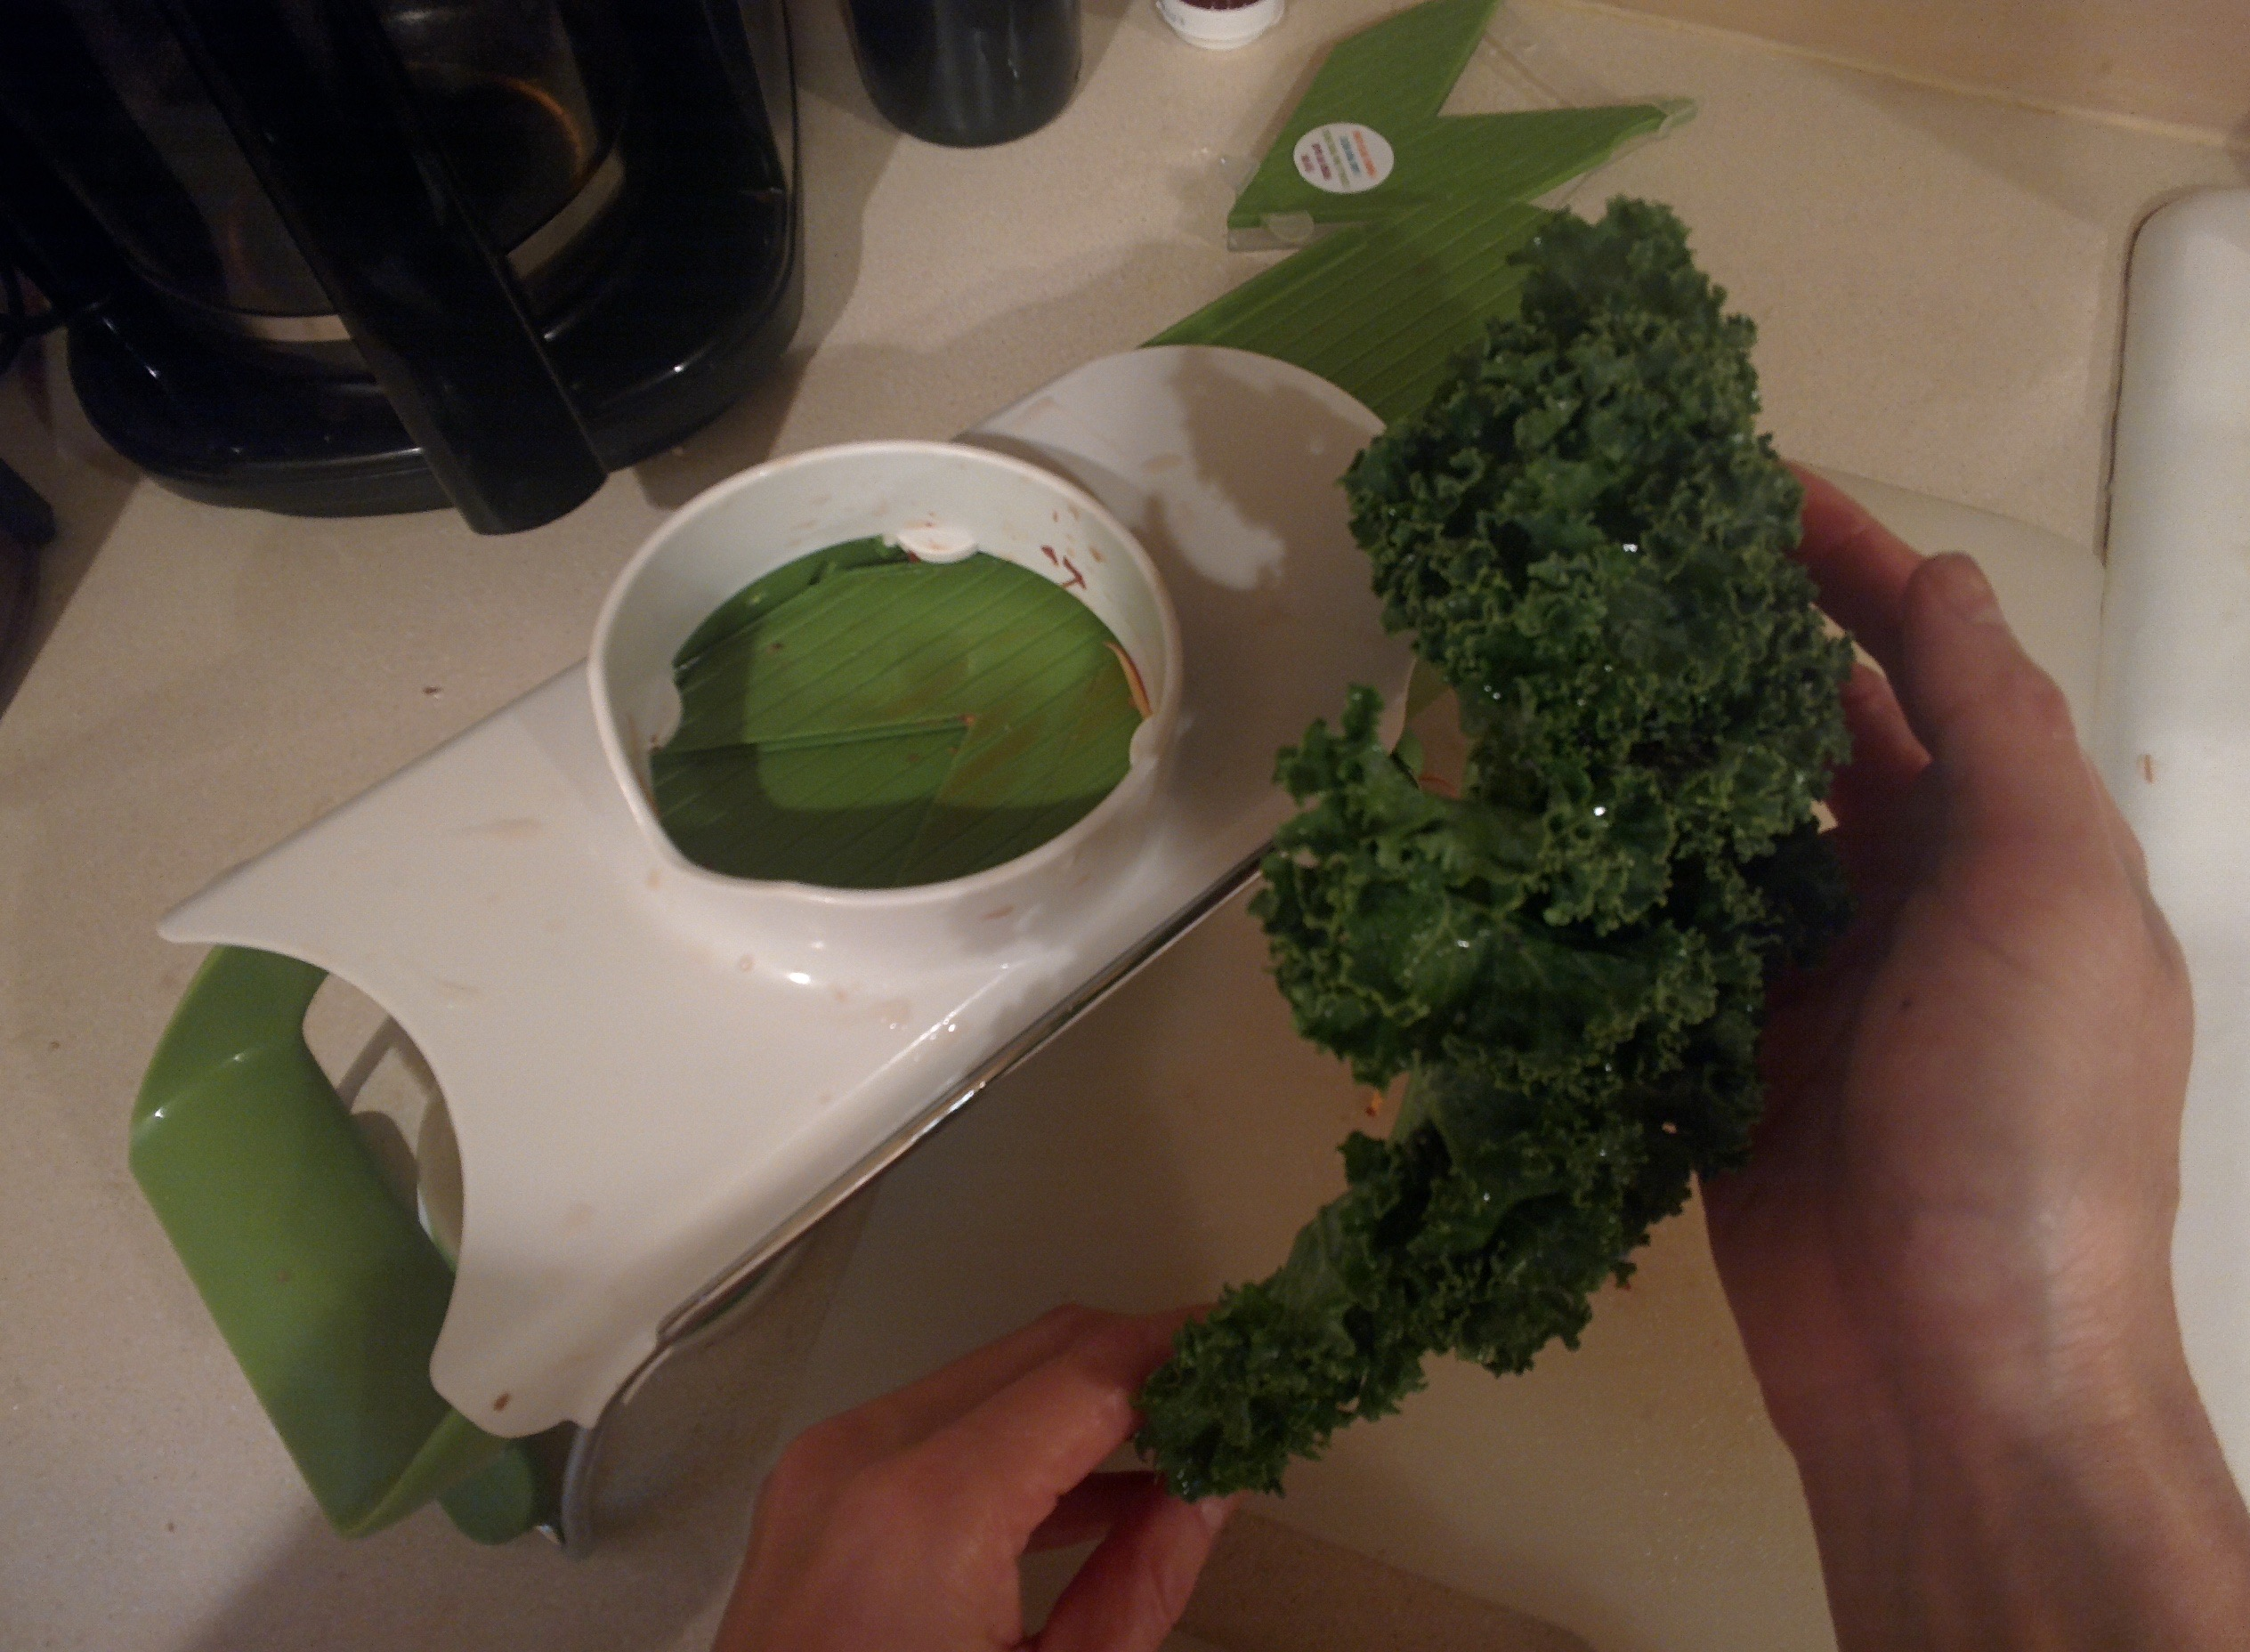 Kale held next to a white and green mandoline from Chef'n, sitting on a kitchen counter, coffee maker in upper left hand corner, sink next to piece of kale